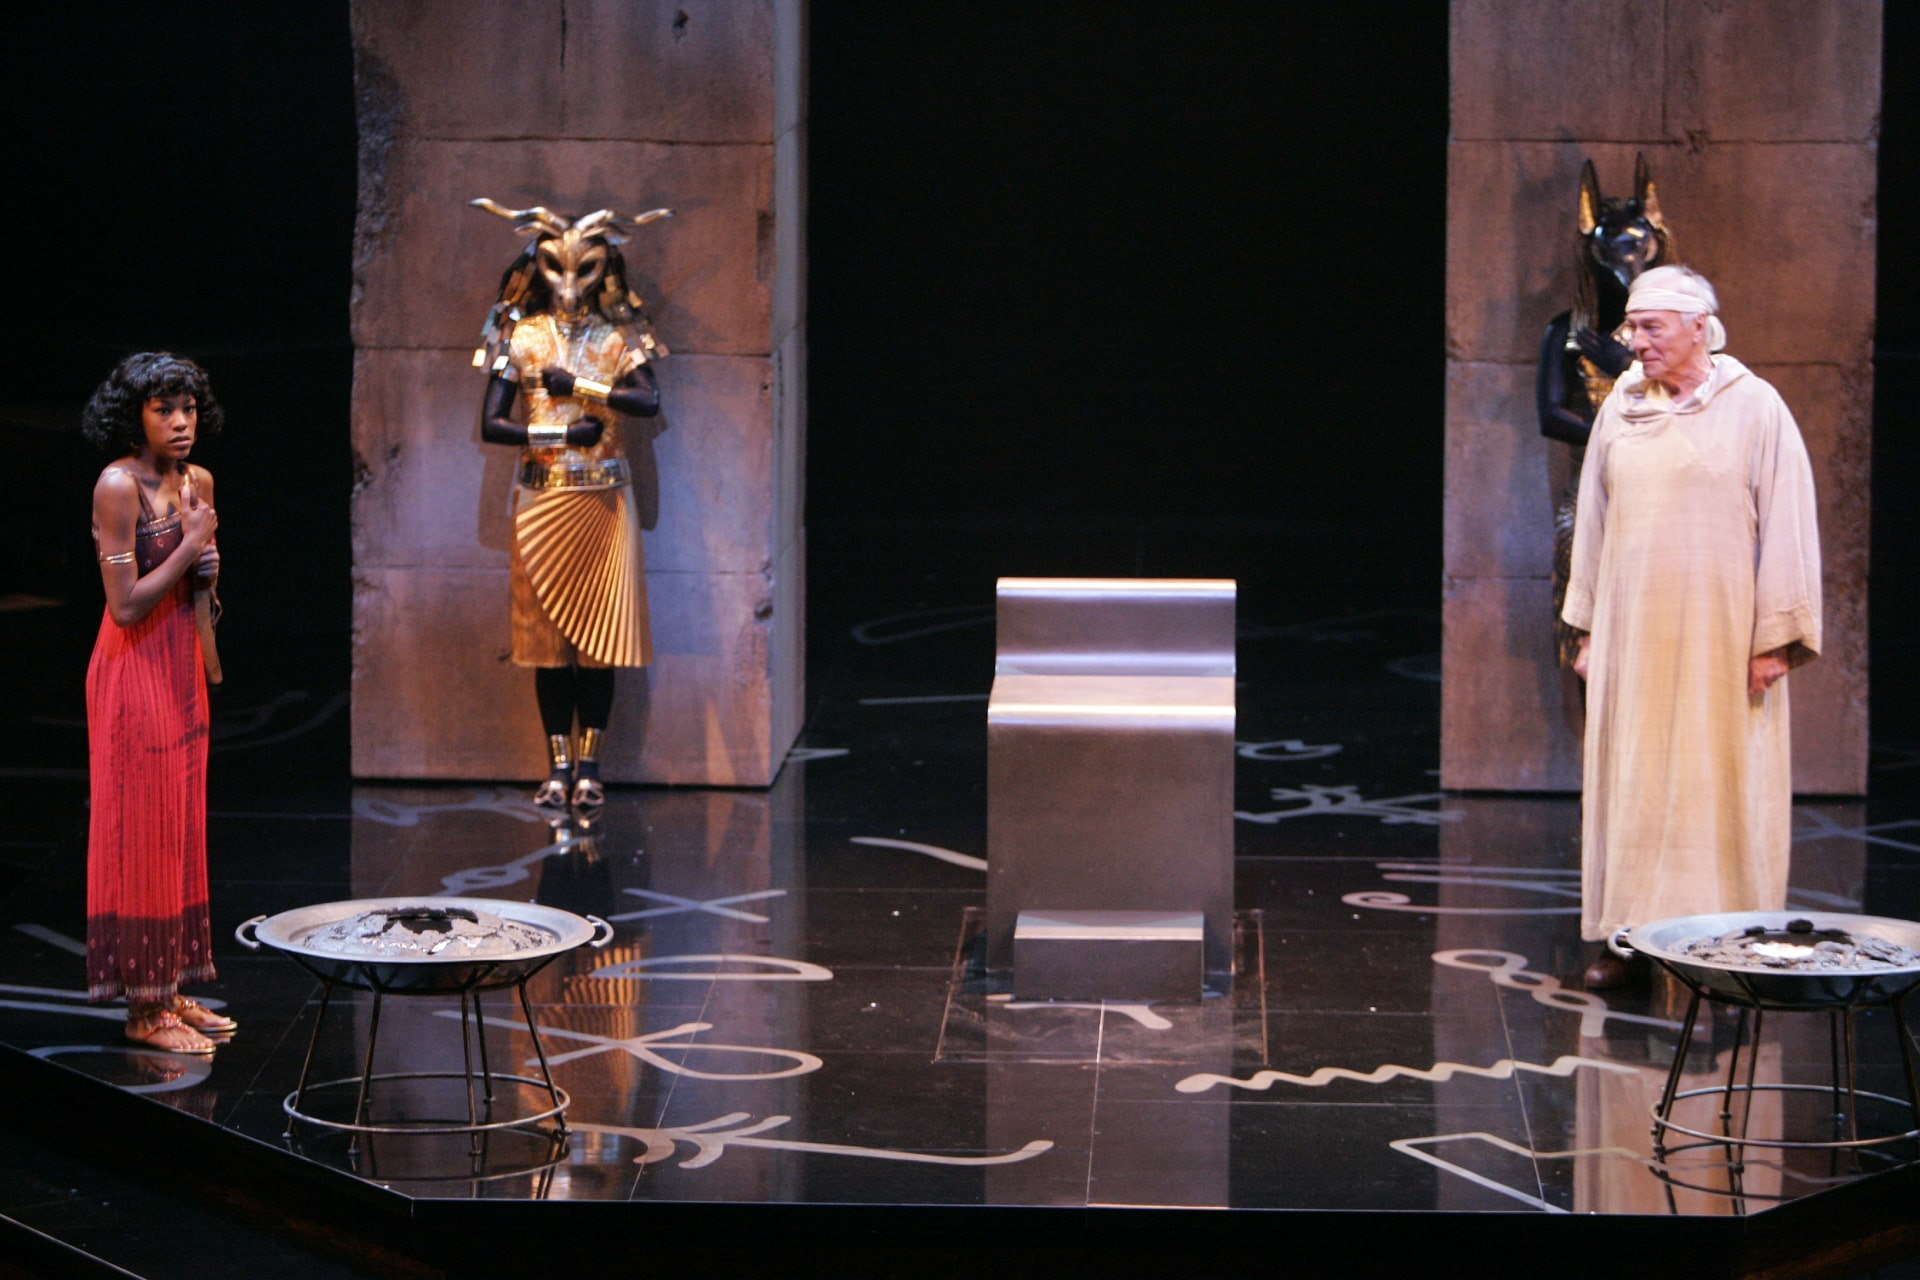 Girl in red dress speaks to old man in white gown on shiny black floor; guards in Egyptian masks behind.